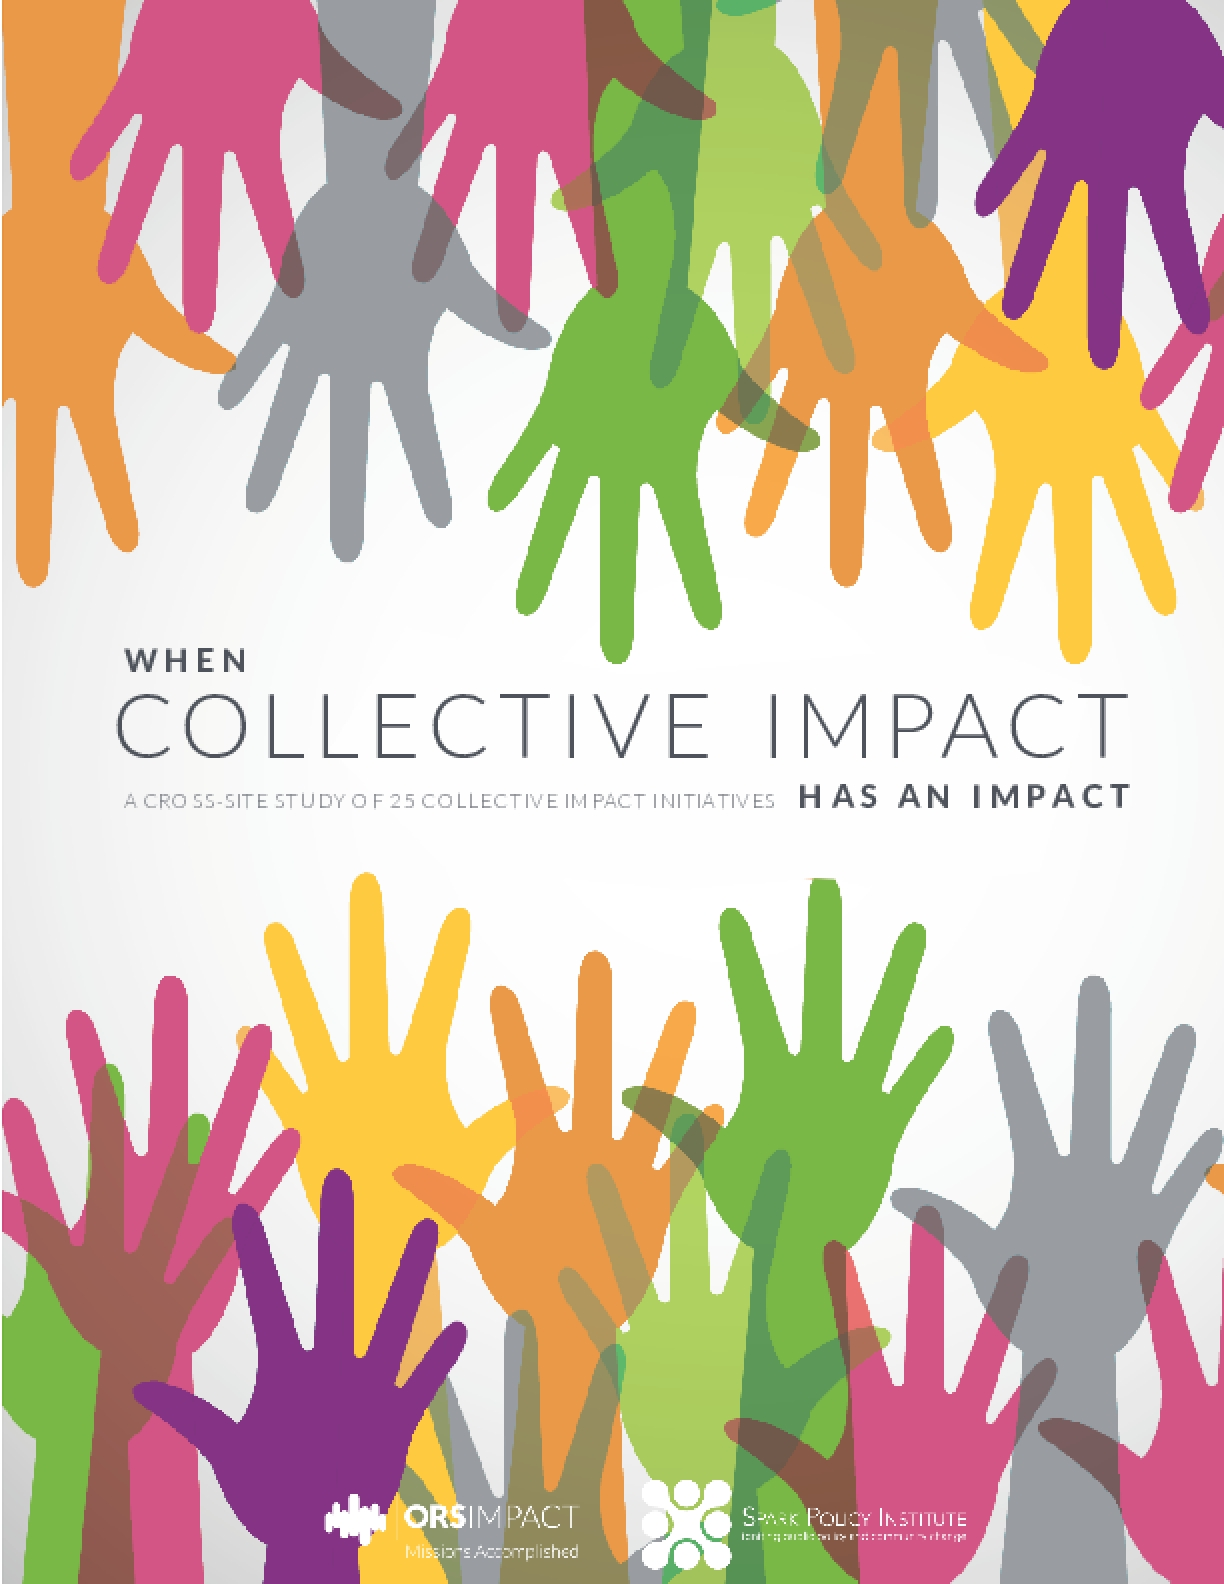 When Collective Impact Has an Impact: A Cross-site Study of 25 Collective Impact Initiatives